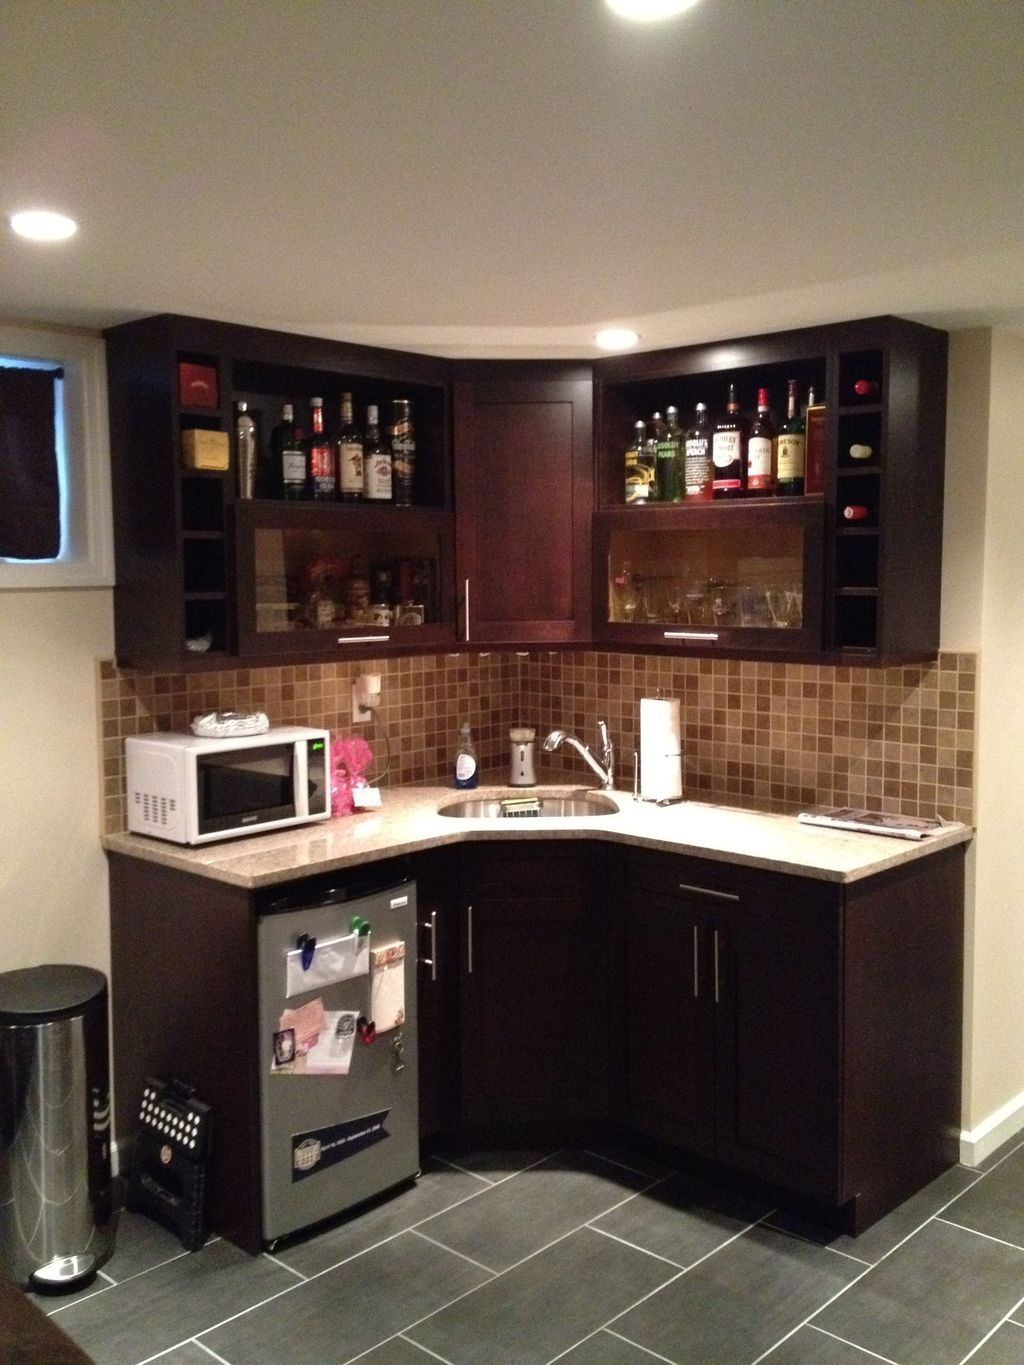 46 adorable kitchen organization ideas for small apartment small basement kitchen small on kitchen organization small apartment id=51103